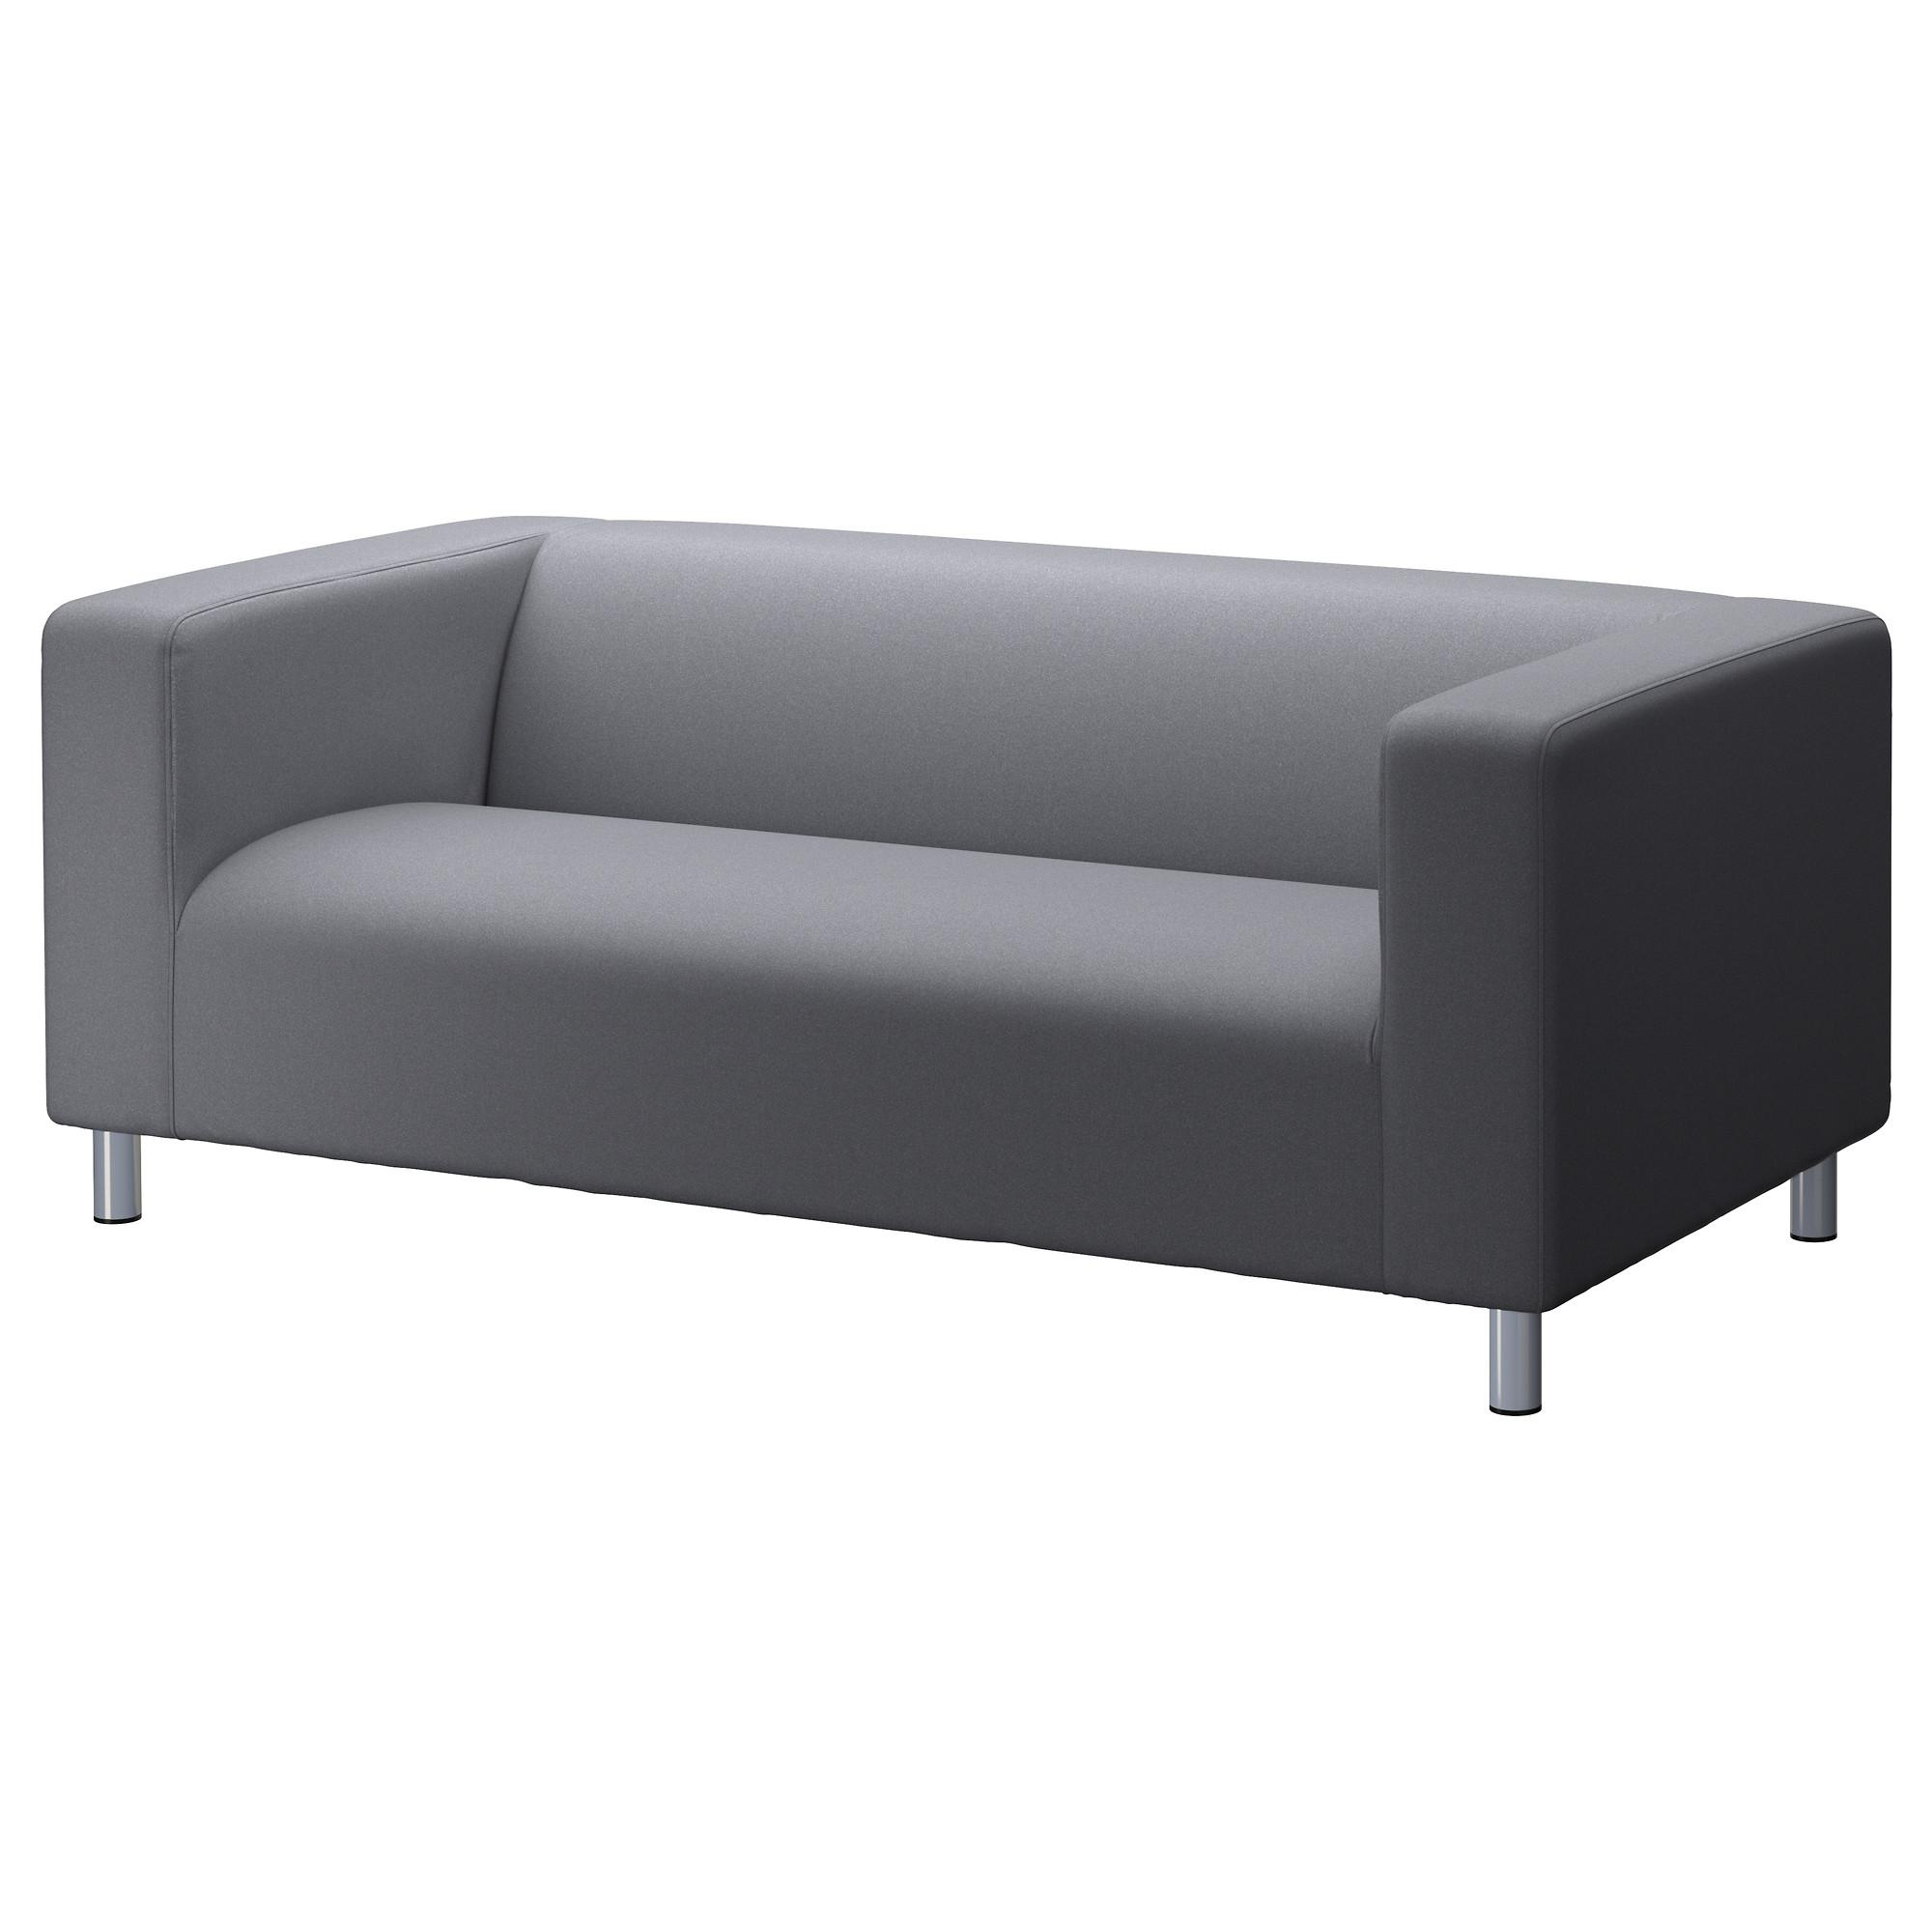 one seat sofa bed ikea rio corner chaise with storage 20 43 choices of two seater sofas ideas